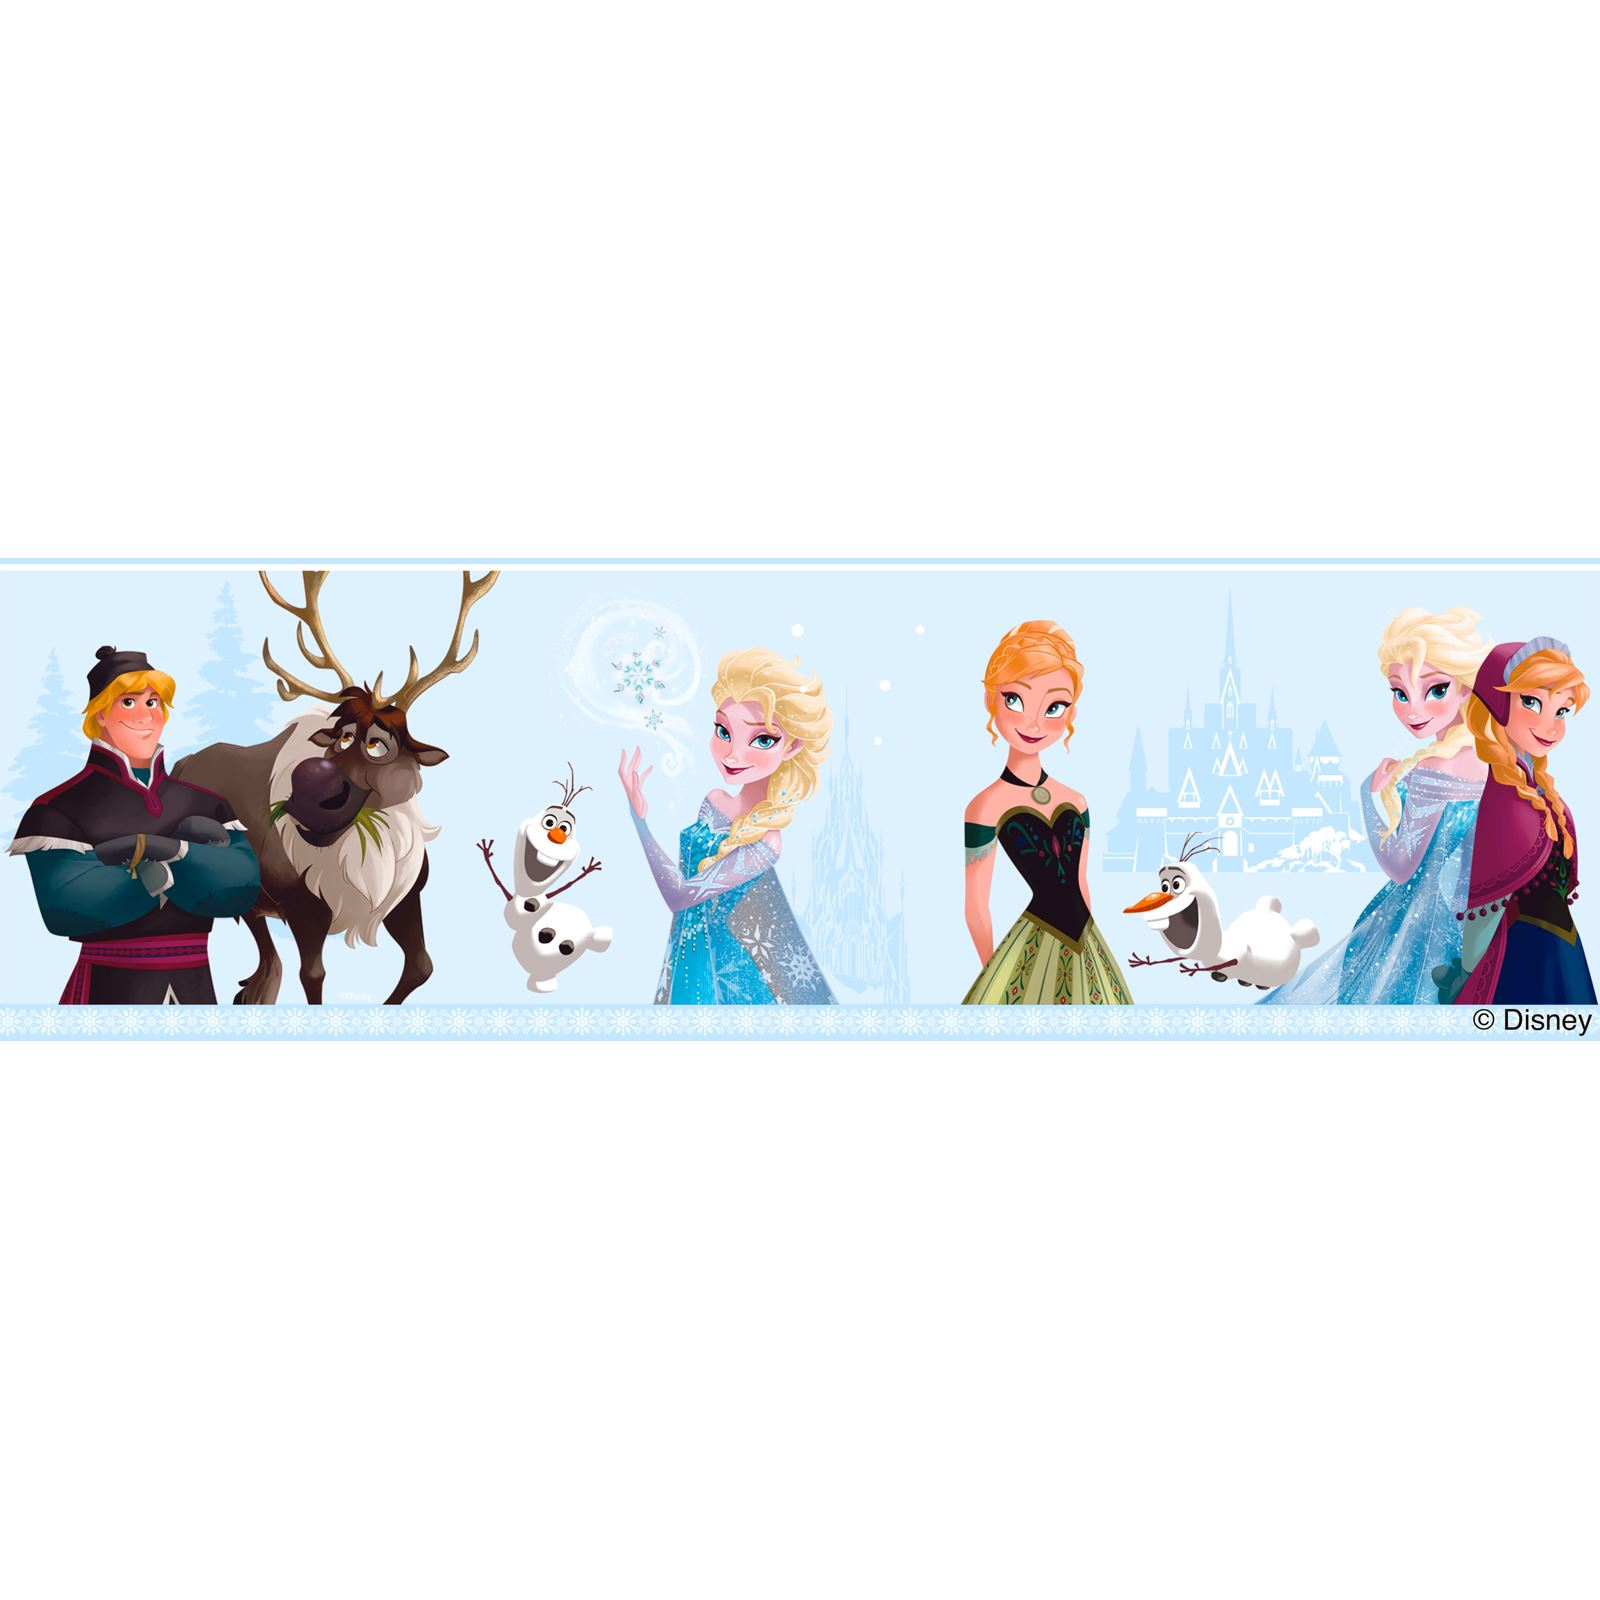 DISNEY FROZEN WALL DECOR INCLUDES WALLPAPER BORDERS AND